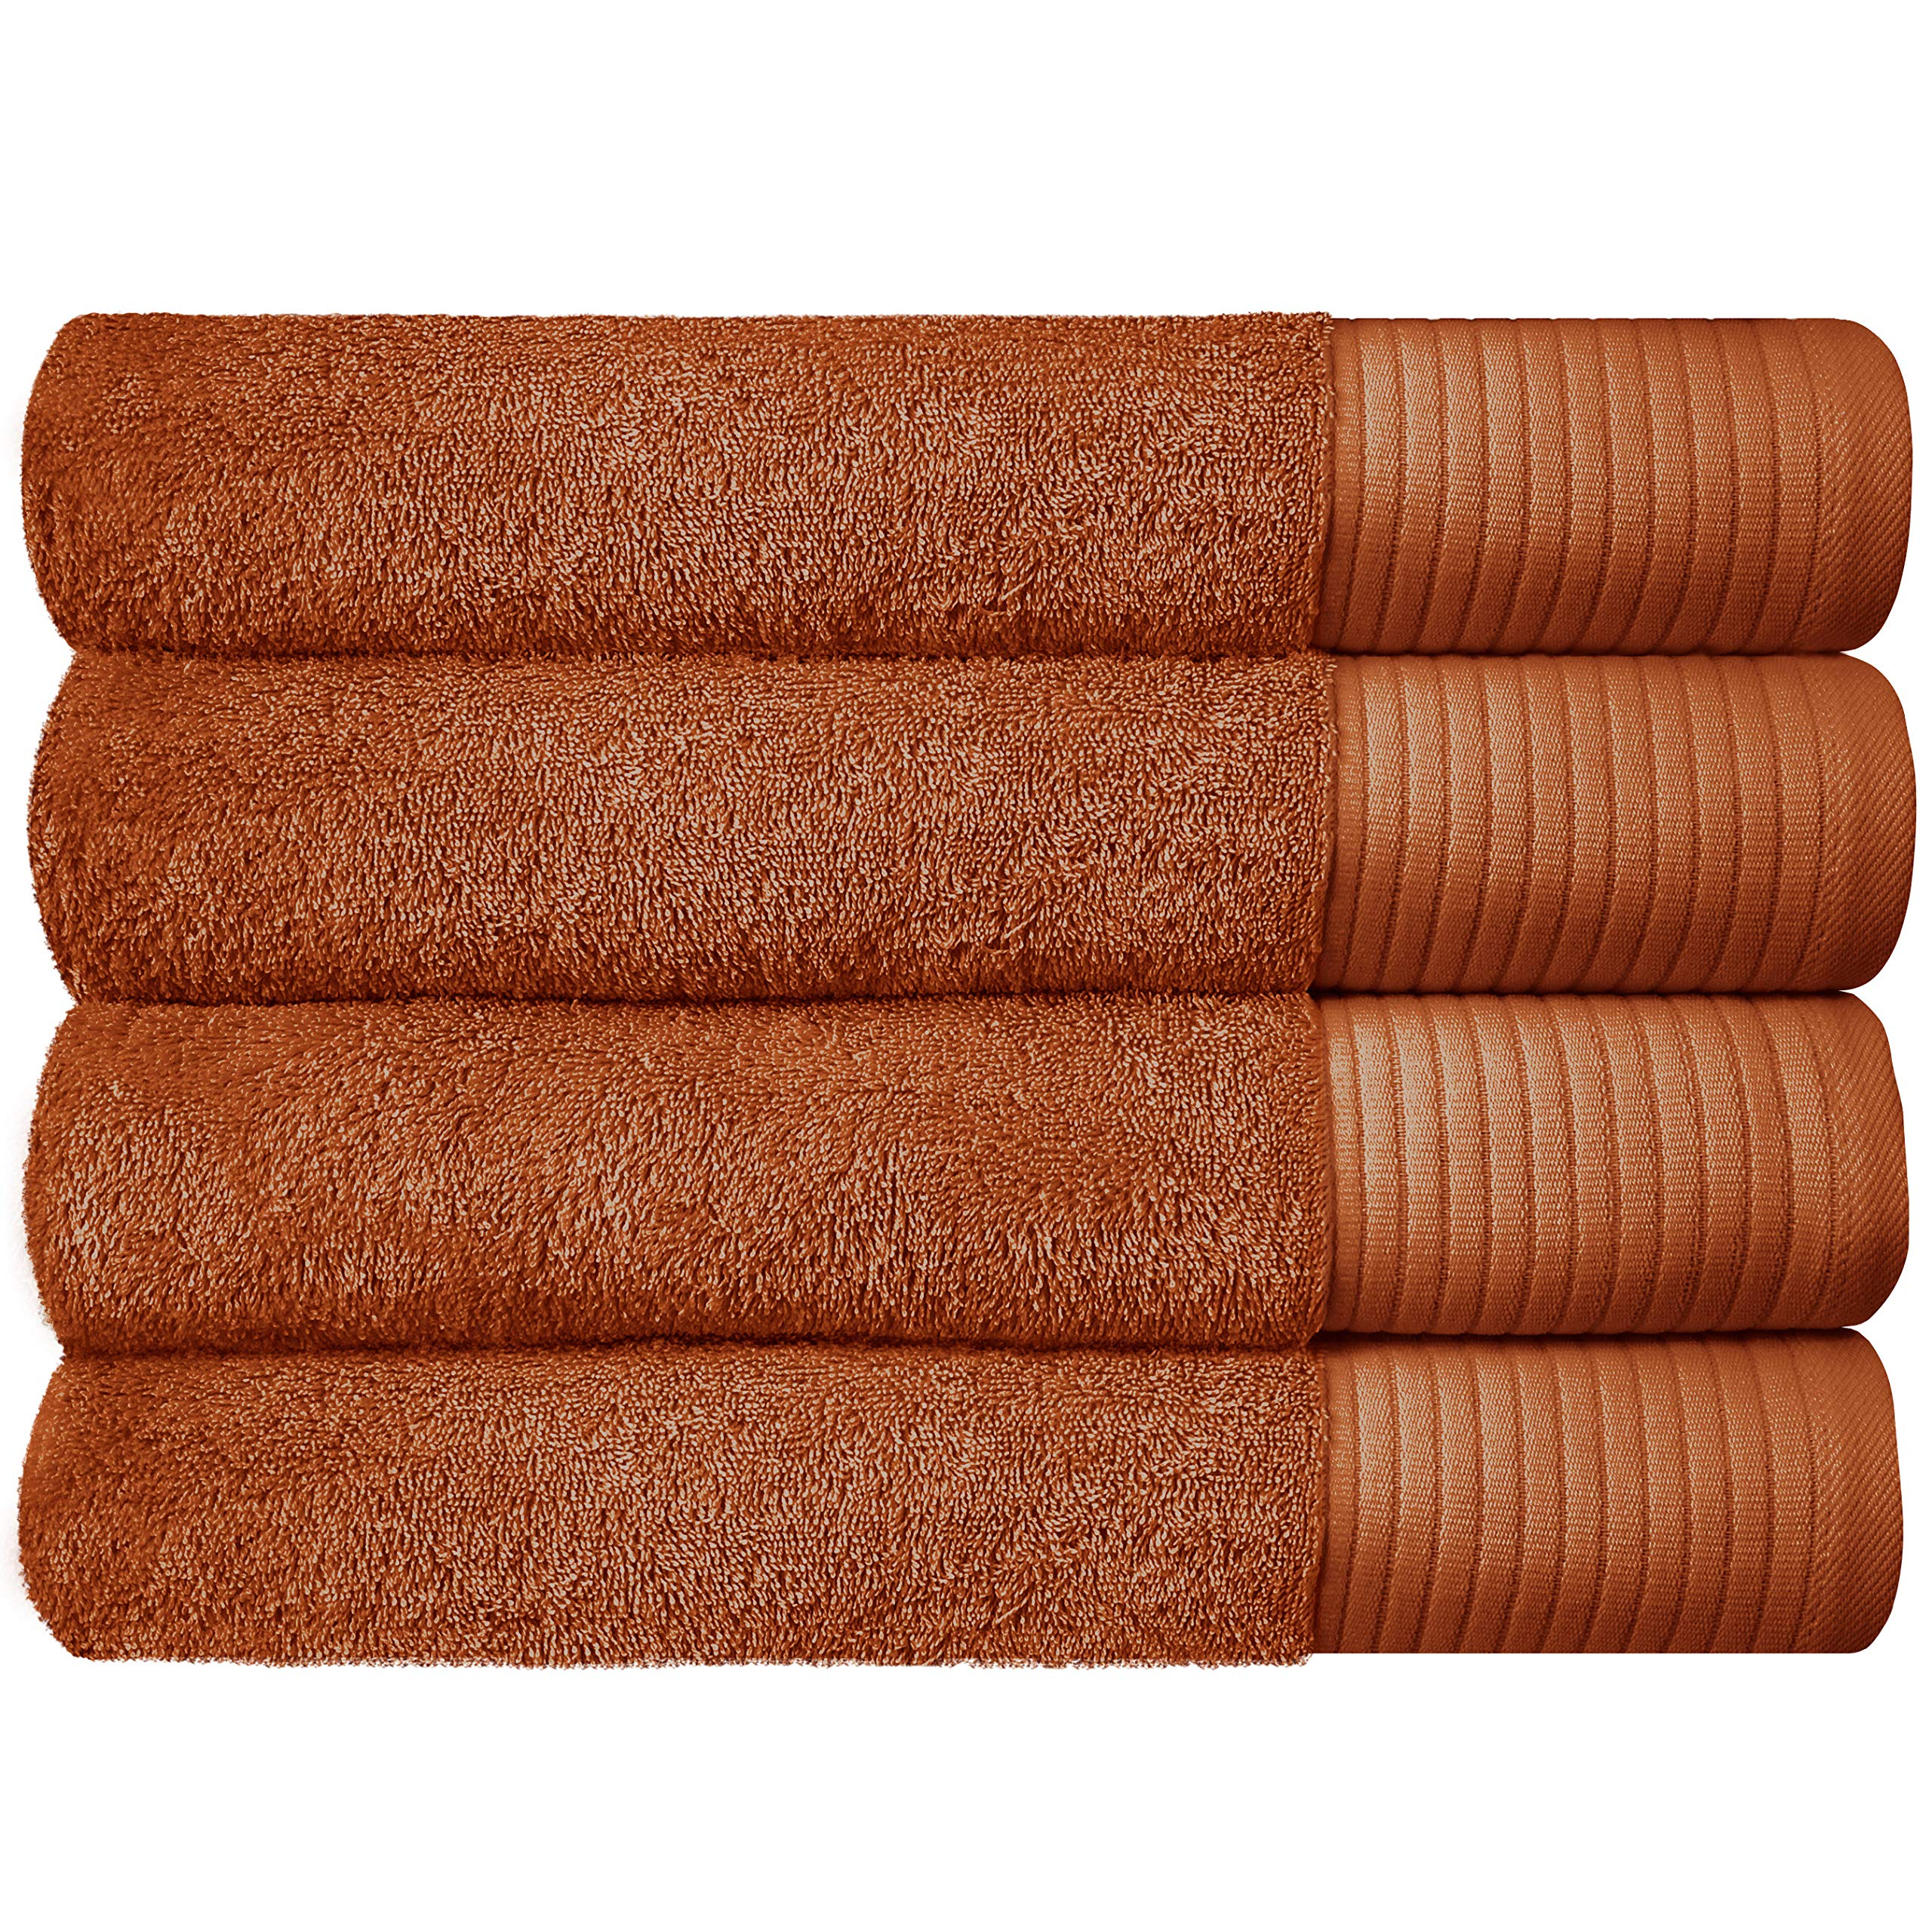 """Set of 4 - JINAMART Luxury Soft Bath Towels